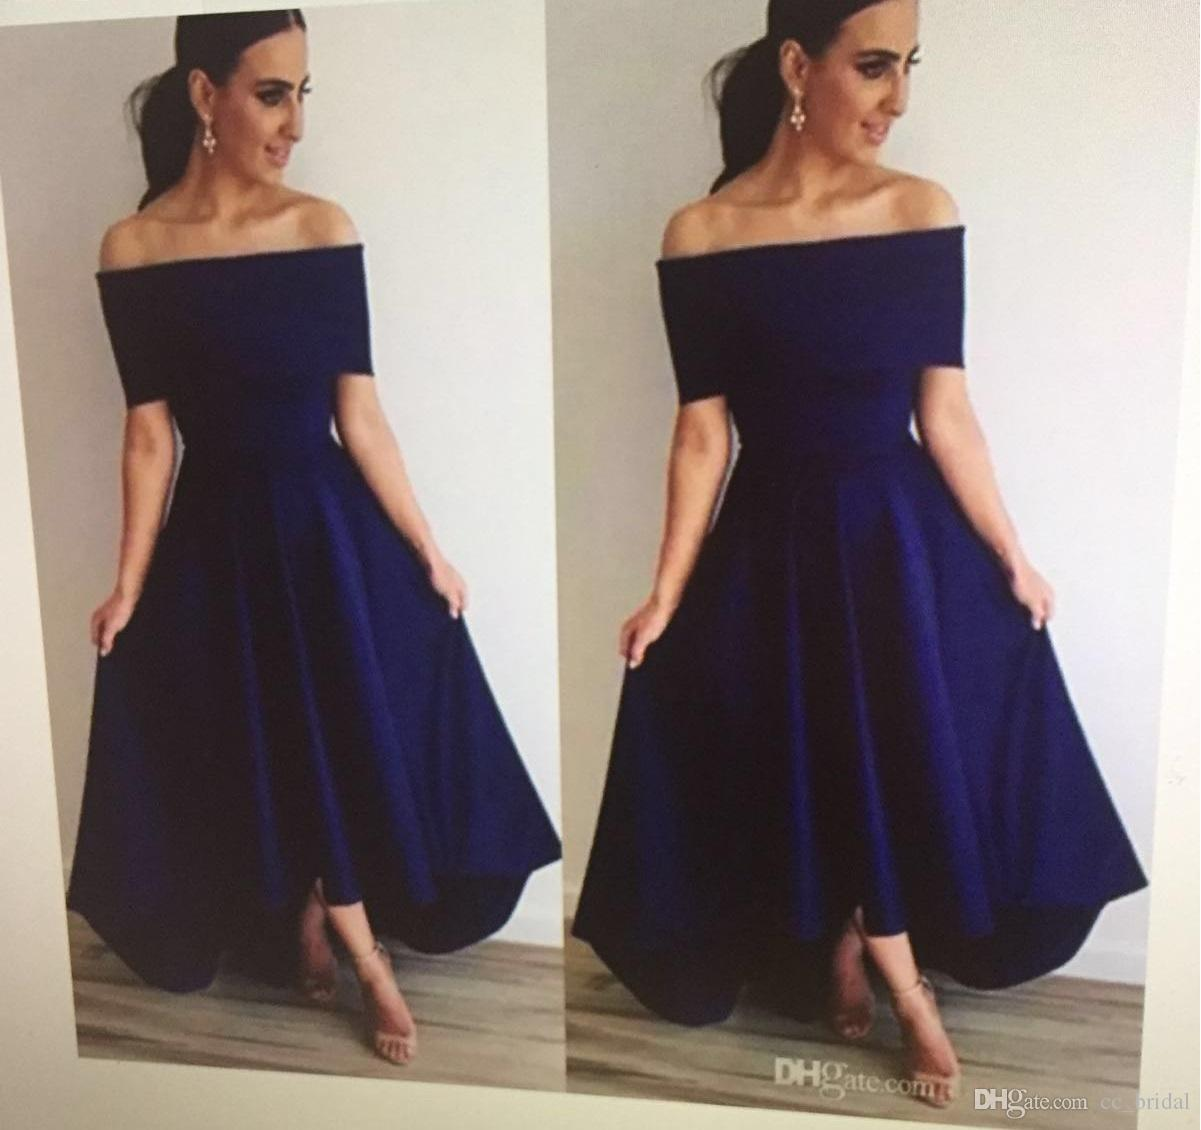 Strapless Navy Blue Bridesmaid Dresses 2018 With Sexy Off Shoulder Maid Of Honor Dress For Weddings Cheap Hi Low Dresses For Wedding Guest Long